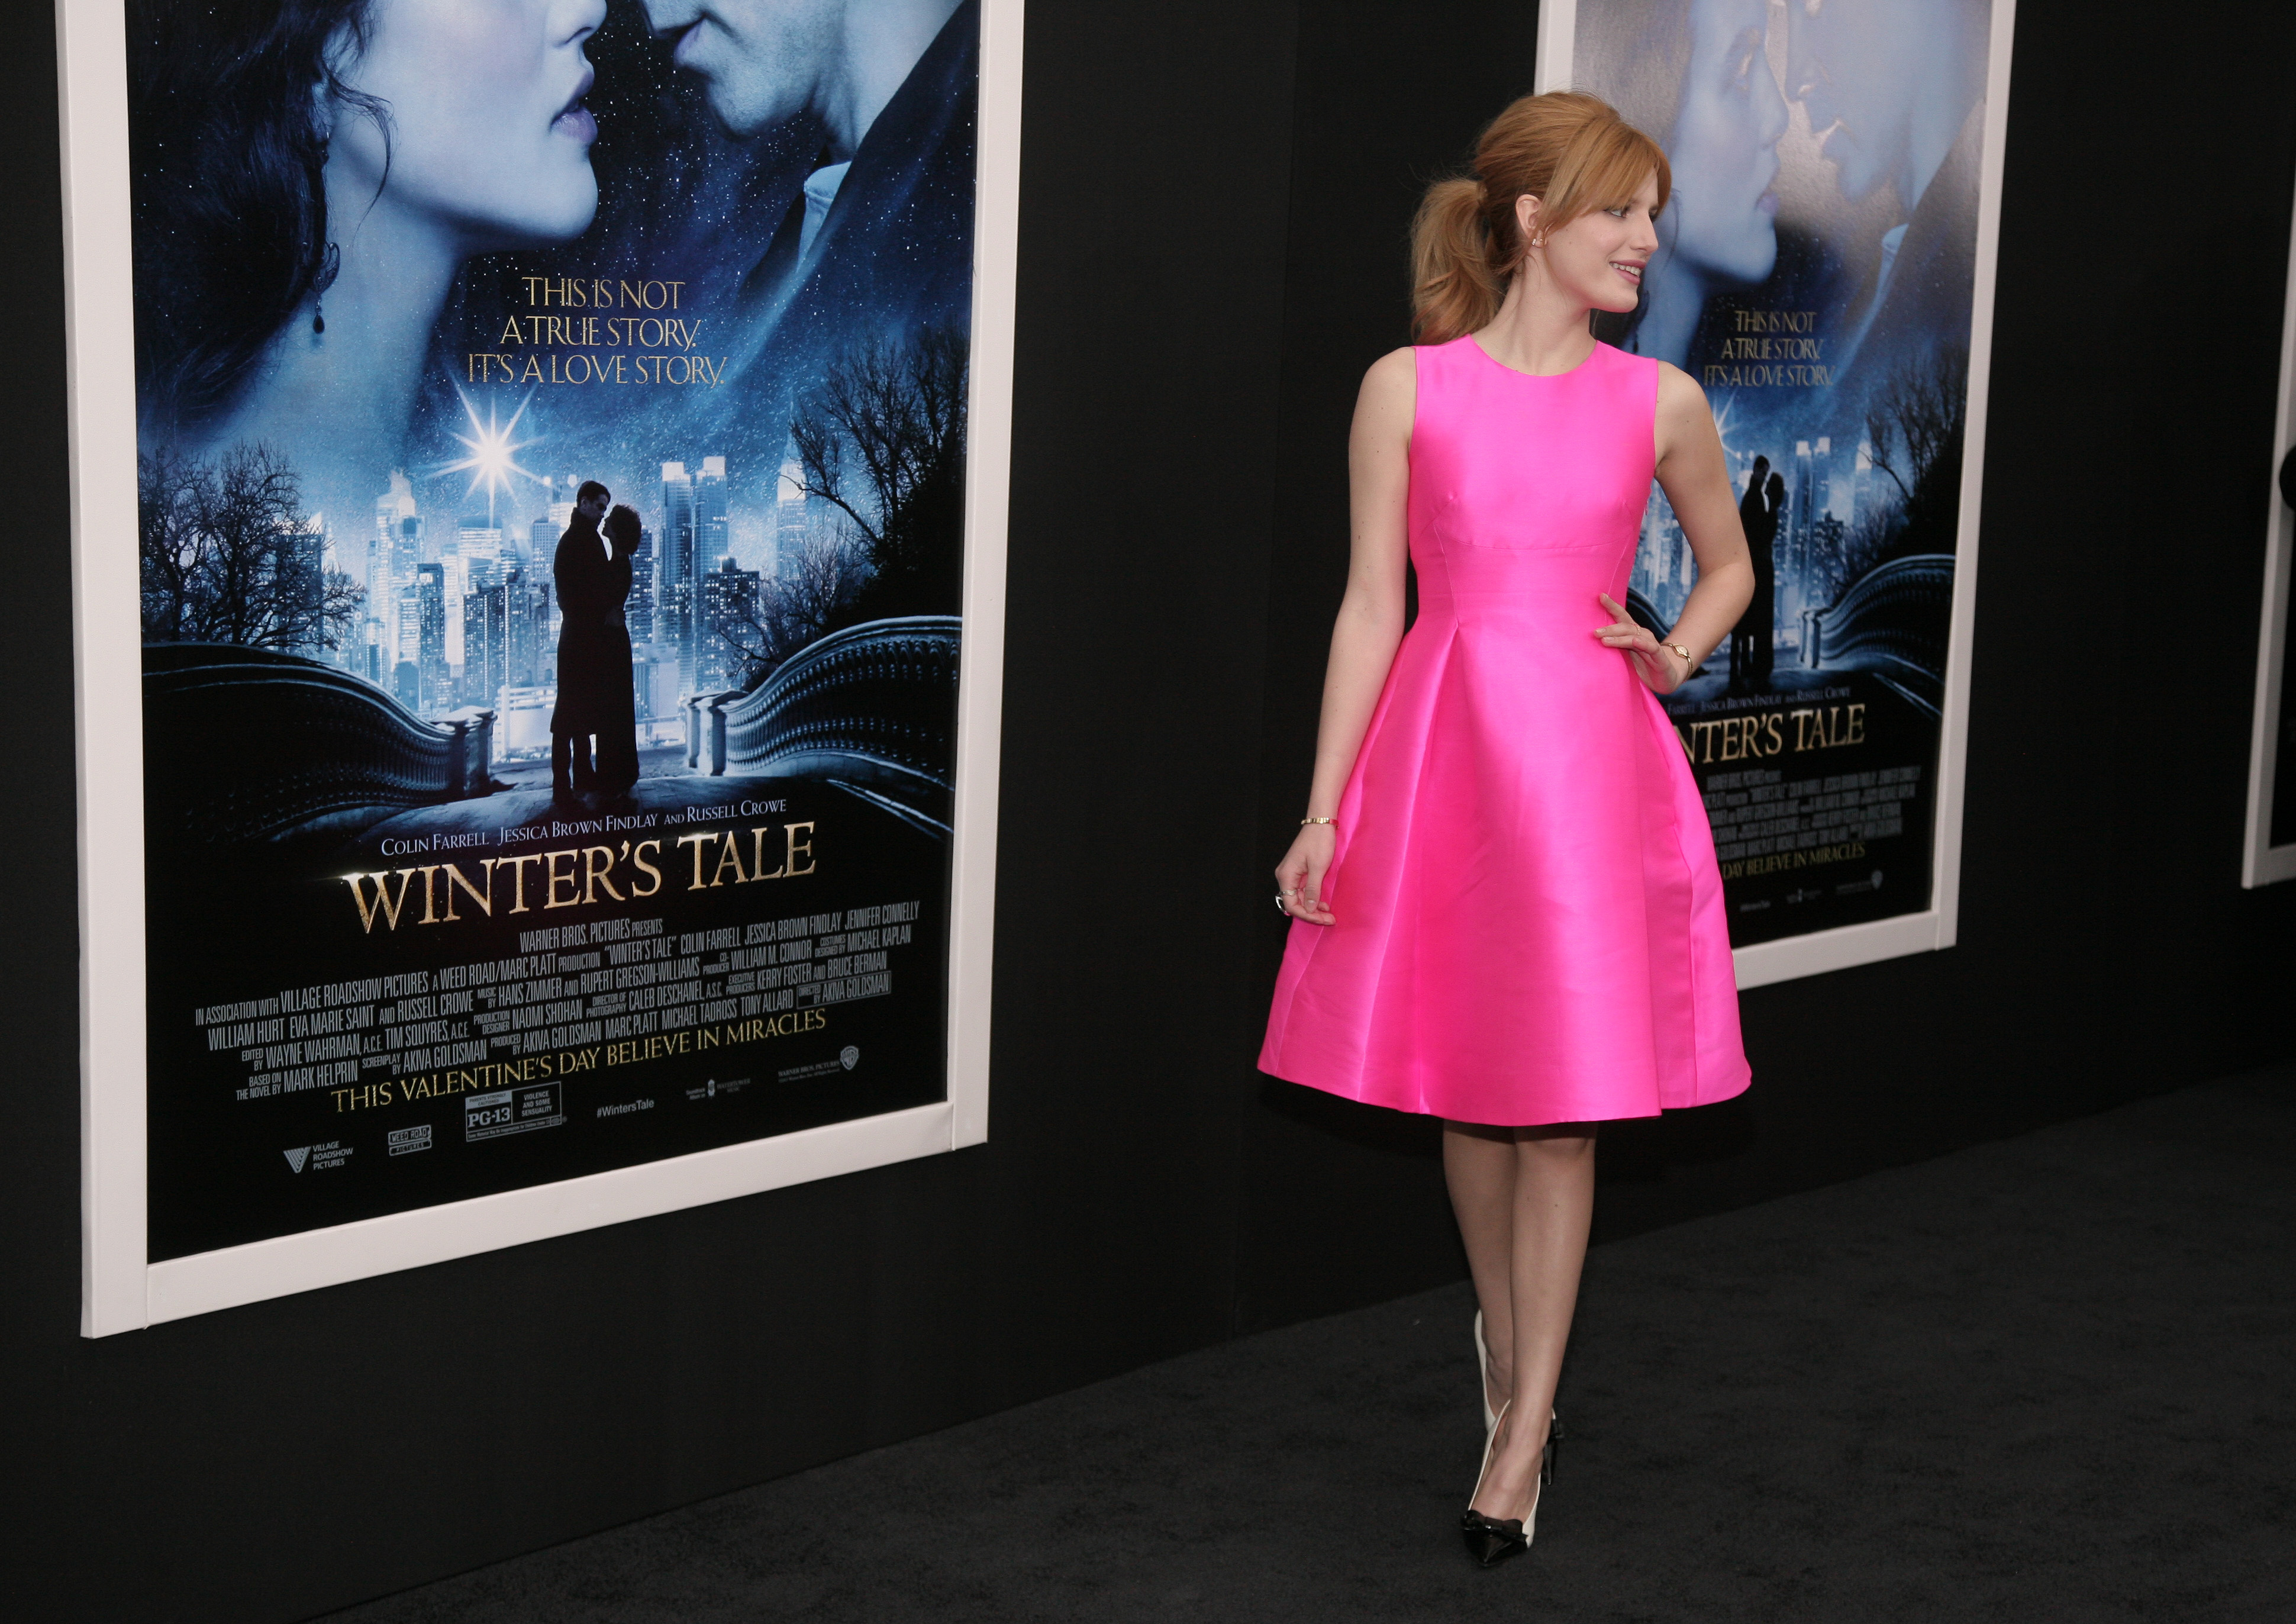 "<div class=""meta image-caption""><div class=""origin-logo origin-image ap""><span>AP</span></div><span class=""caption-text"">Actress Bella Thorne attends the world premiere of ""Winter's Tale"" on Tuesday, Feb. 11, 2014 in New York. (Photo by Andy Kropa/Invision/AP) (Andy Kropa /Invision/AP)</span></div>"